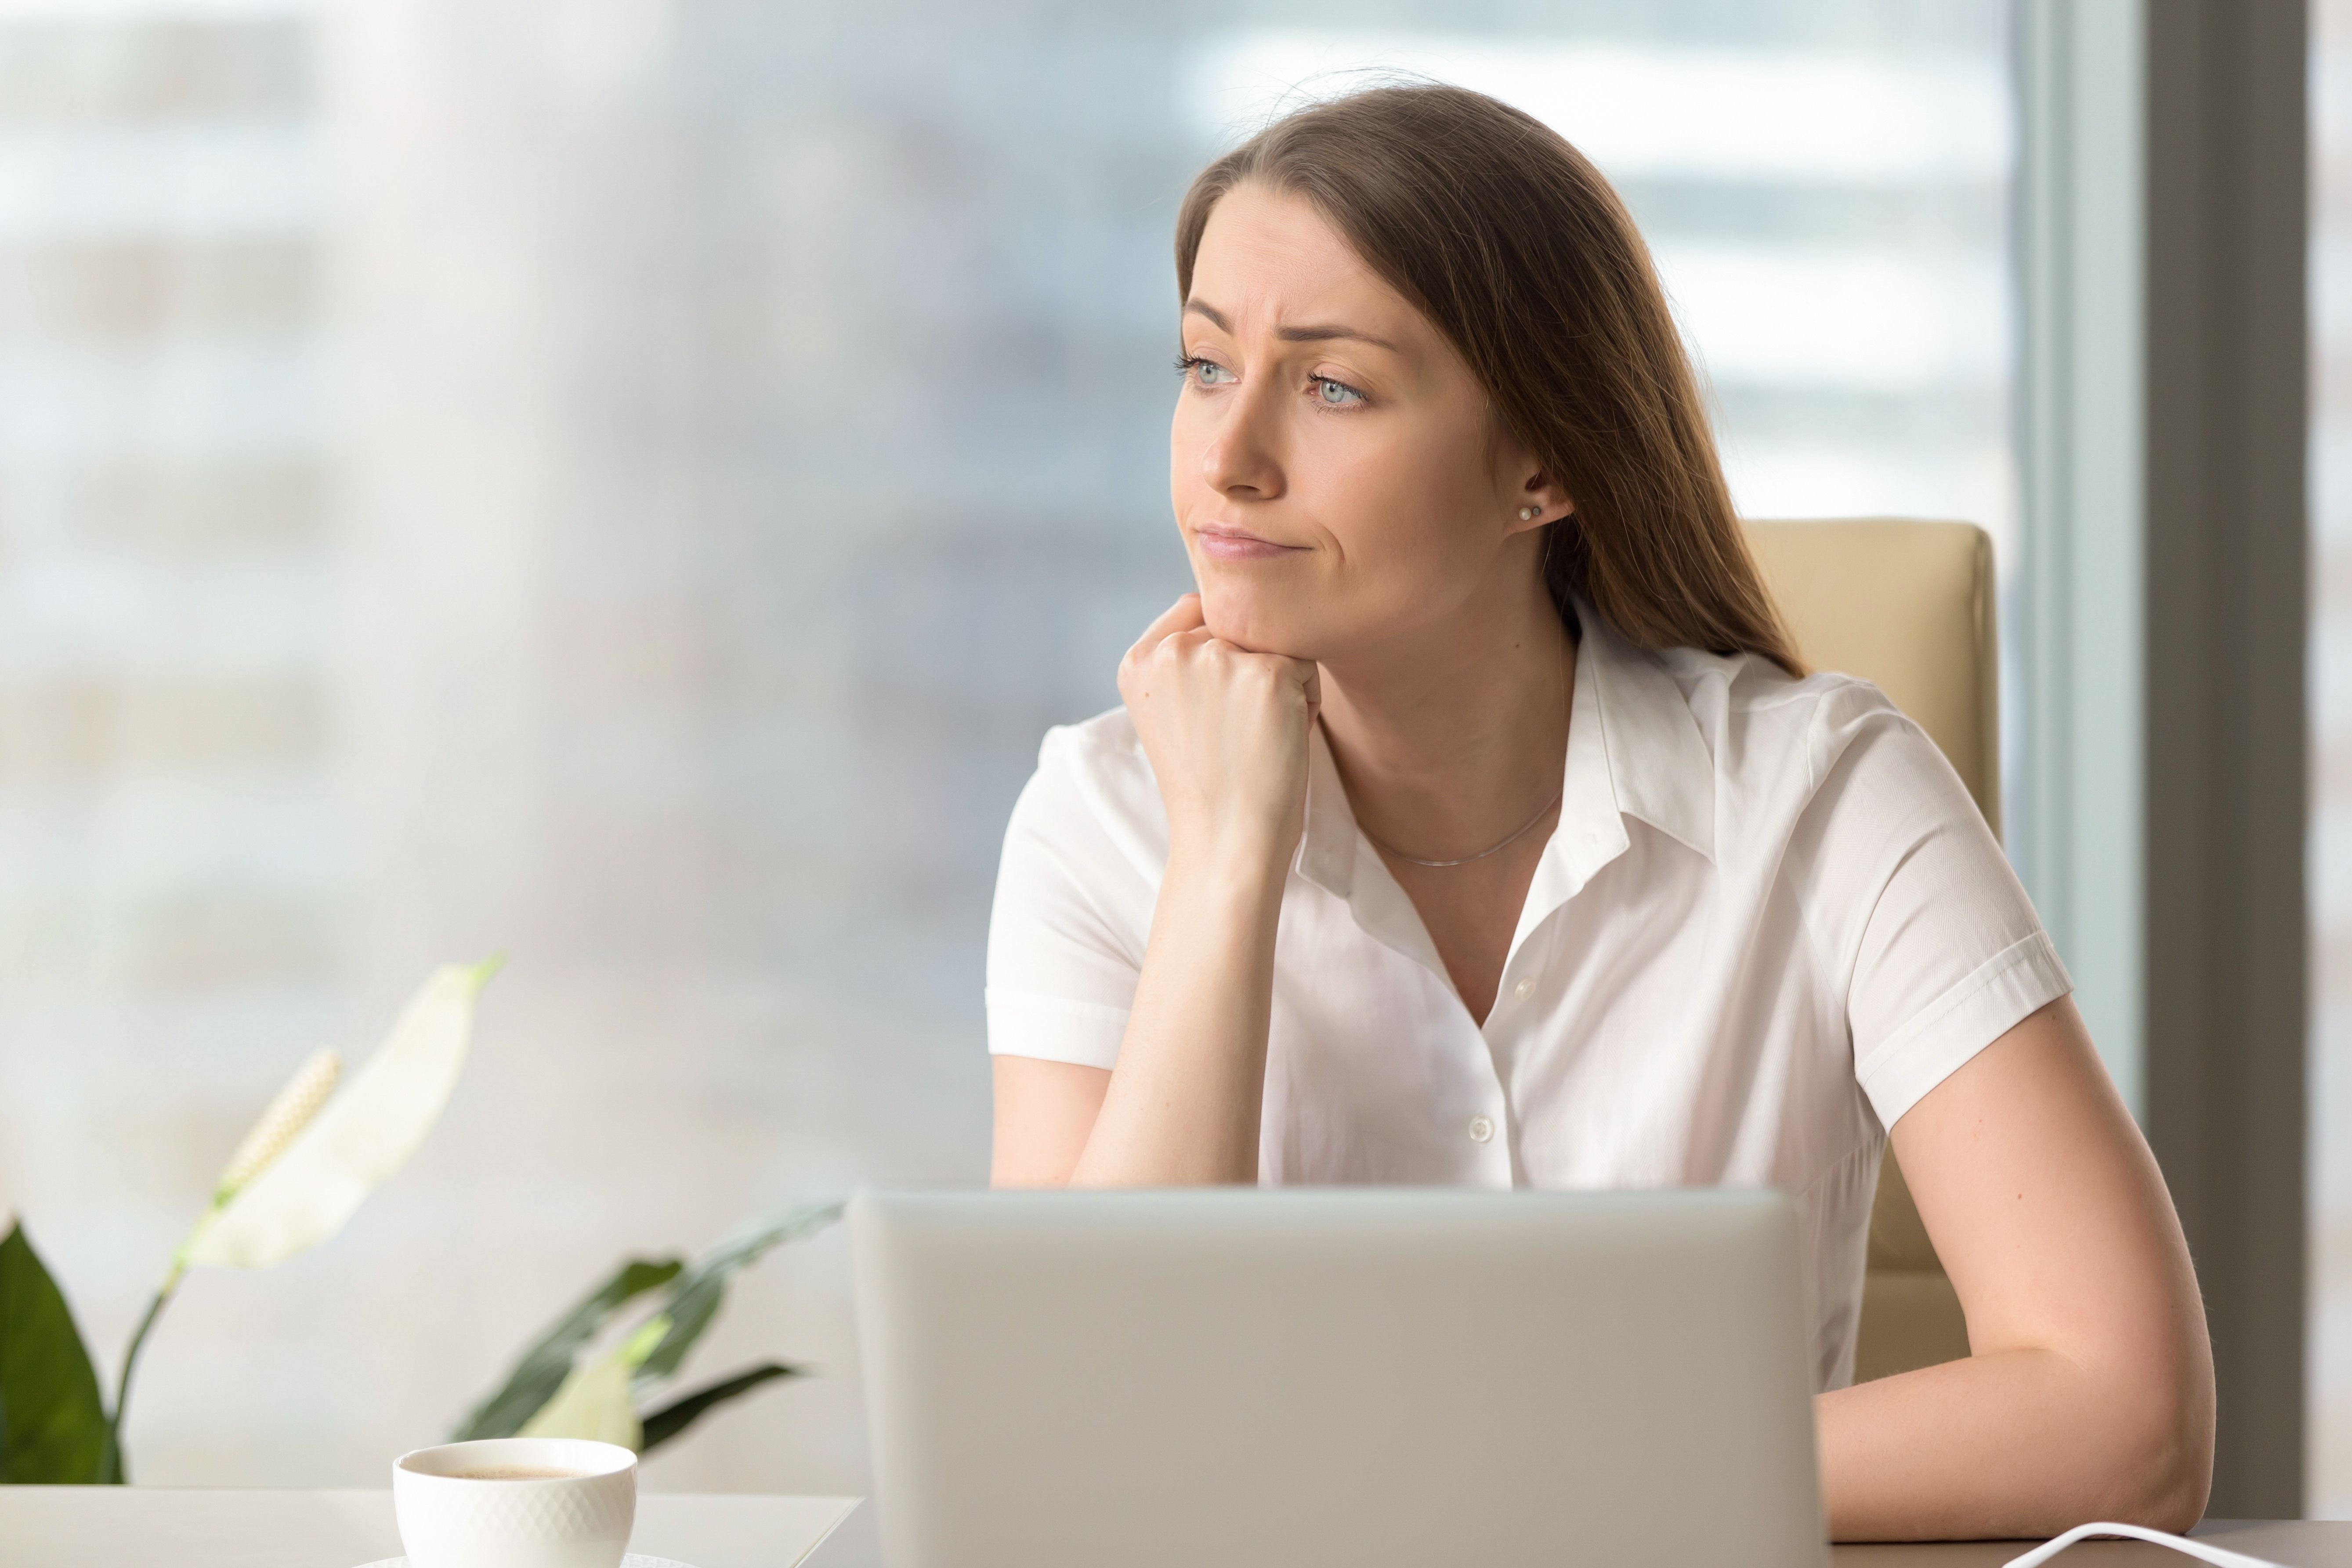 A woman focused on studying while using her laptop. | Source: Shutterstock